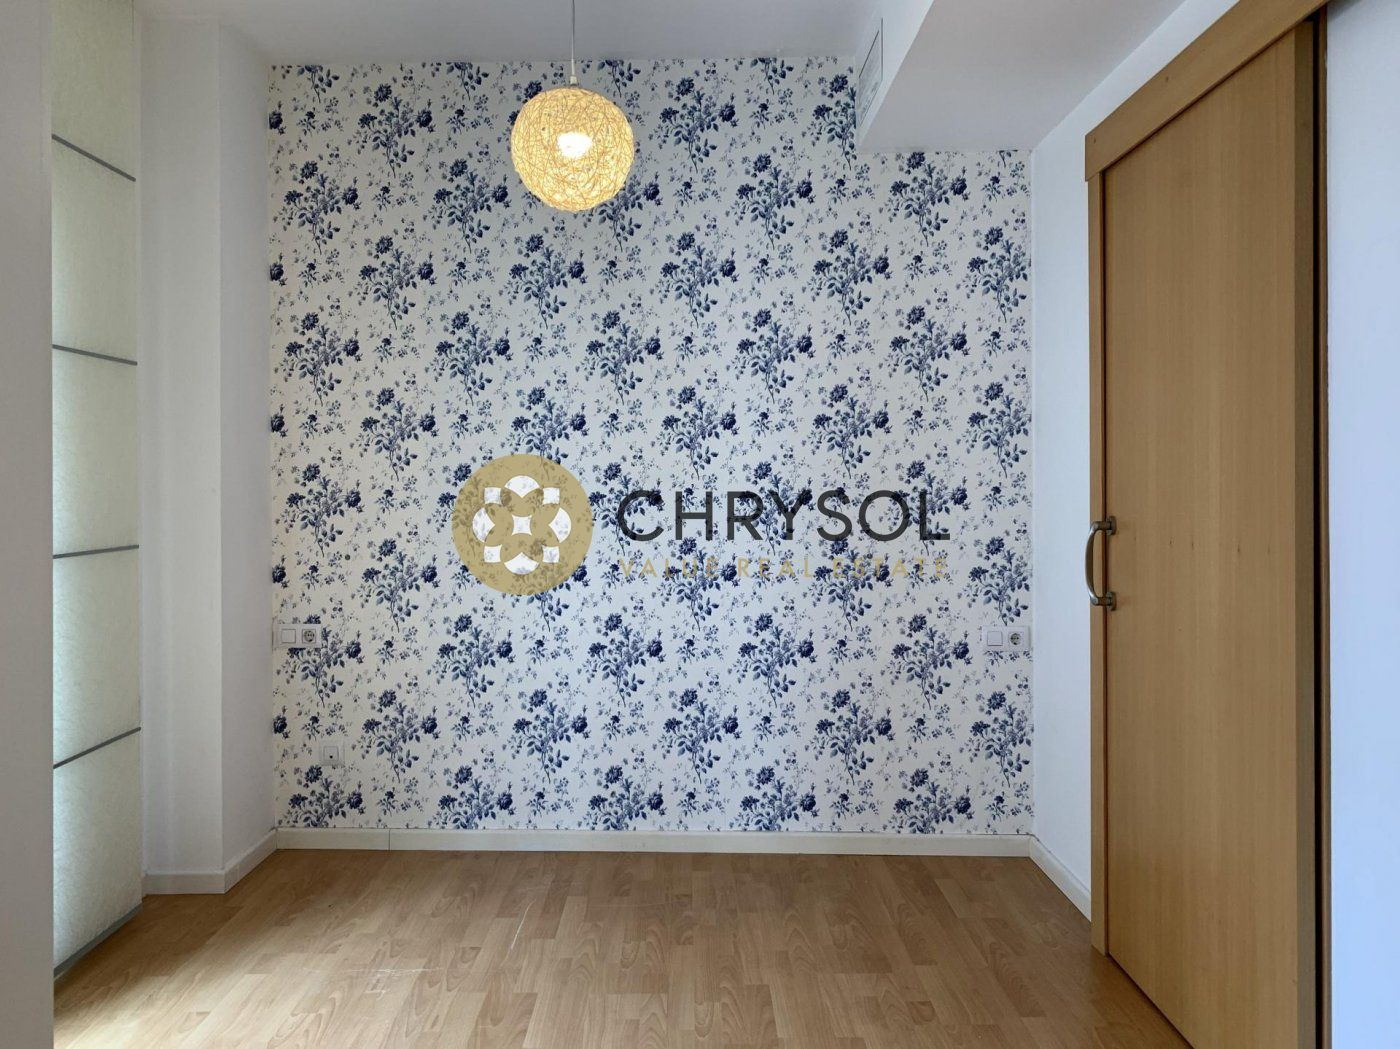 Photogallery - 10 - Chrysol Value